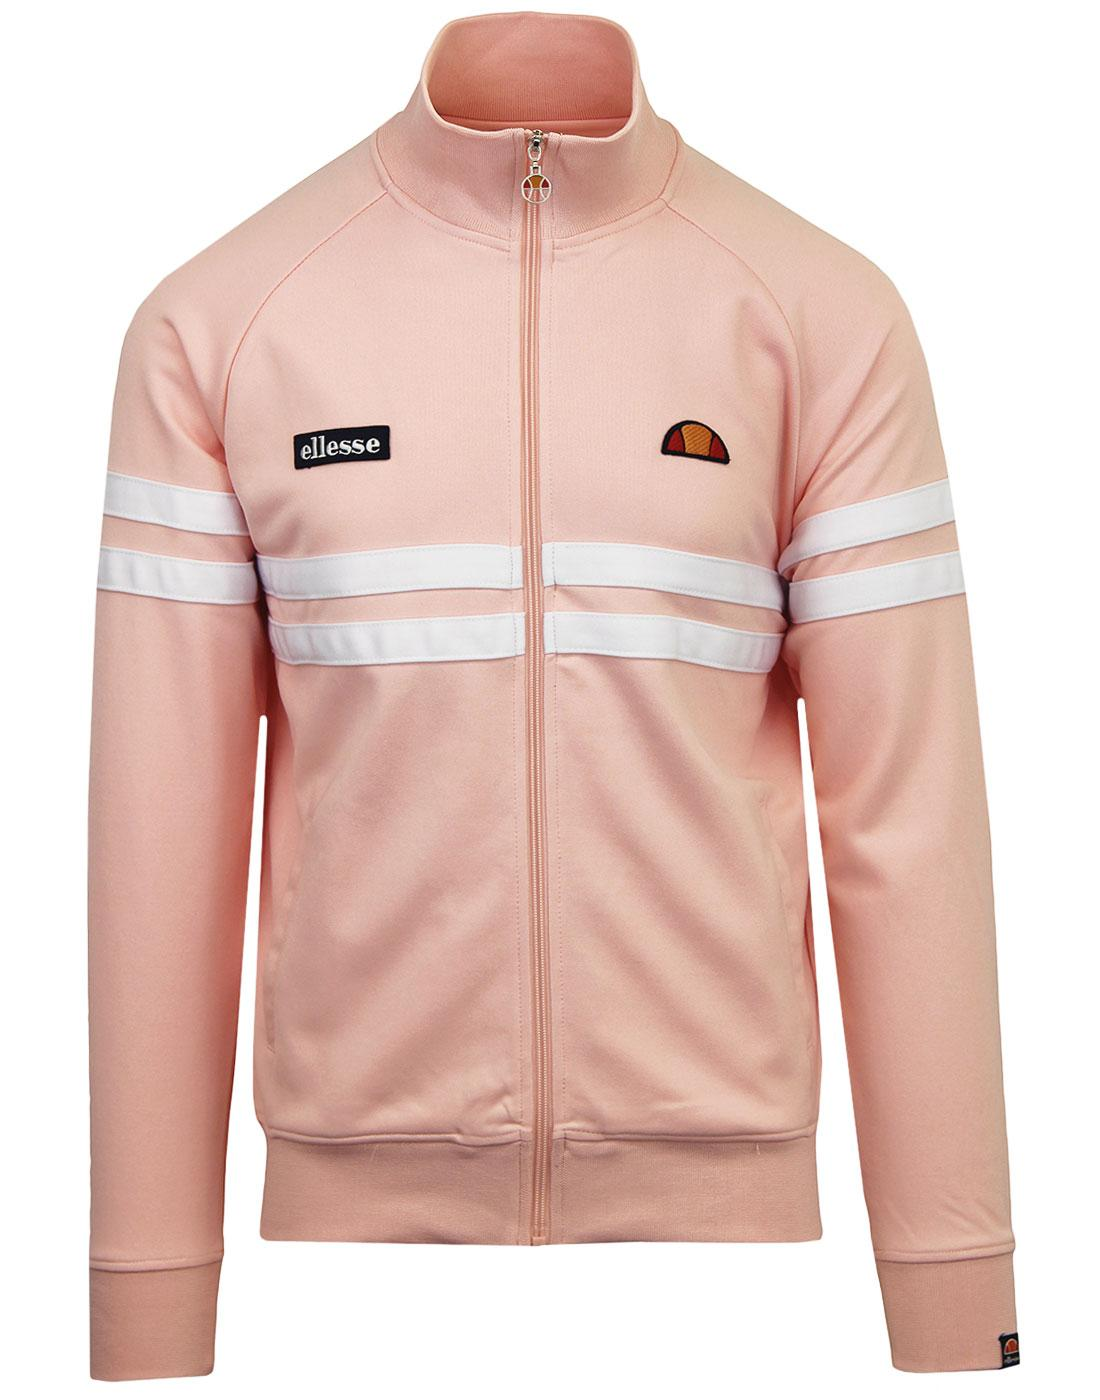 Rimini ELLESSE Retro 80s Panel Stripe Track Top SC